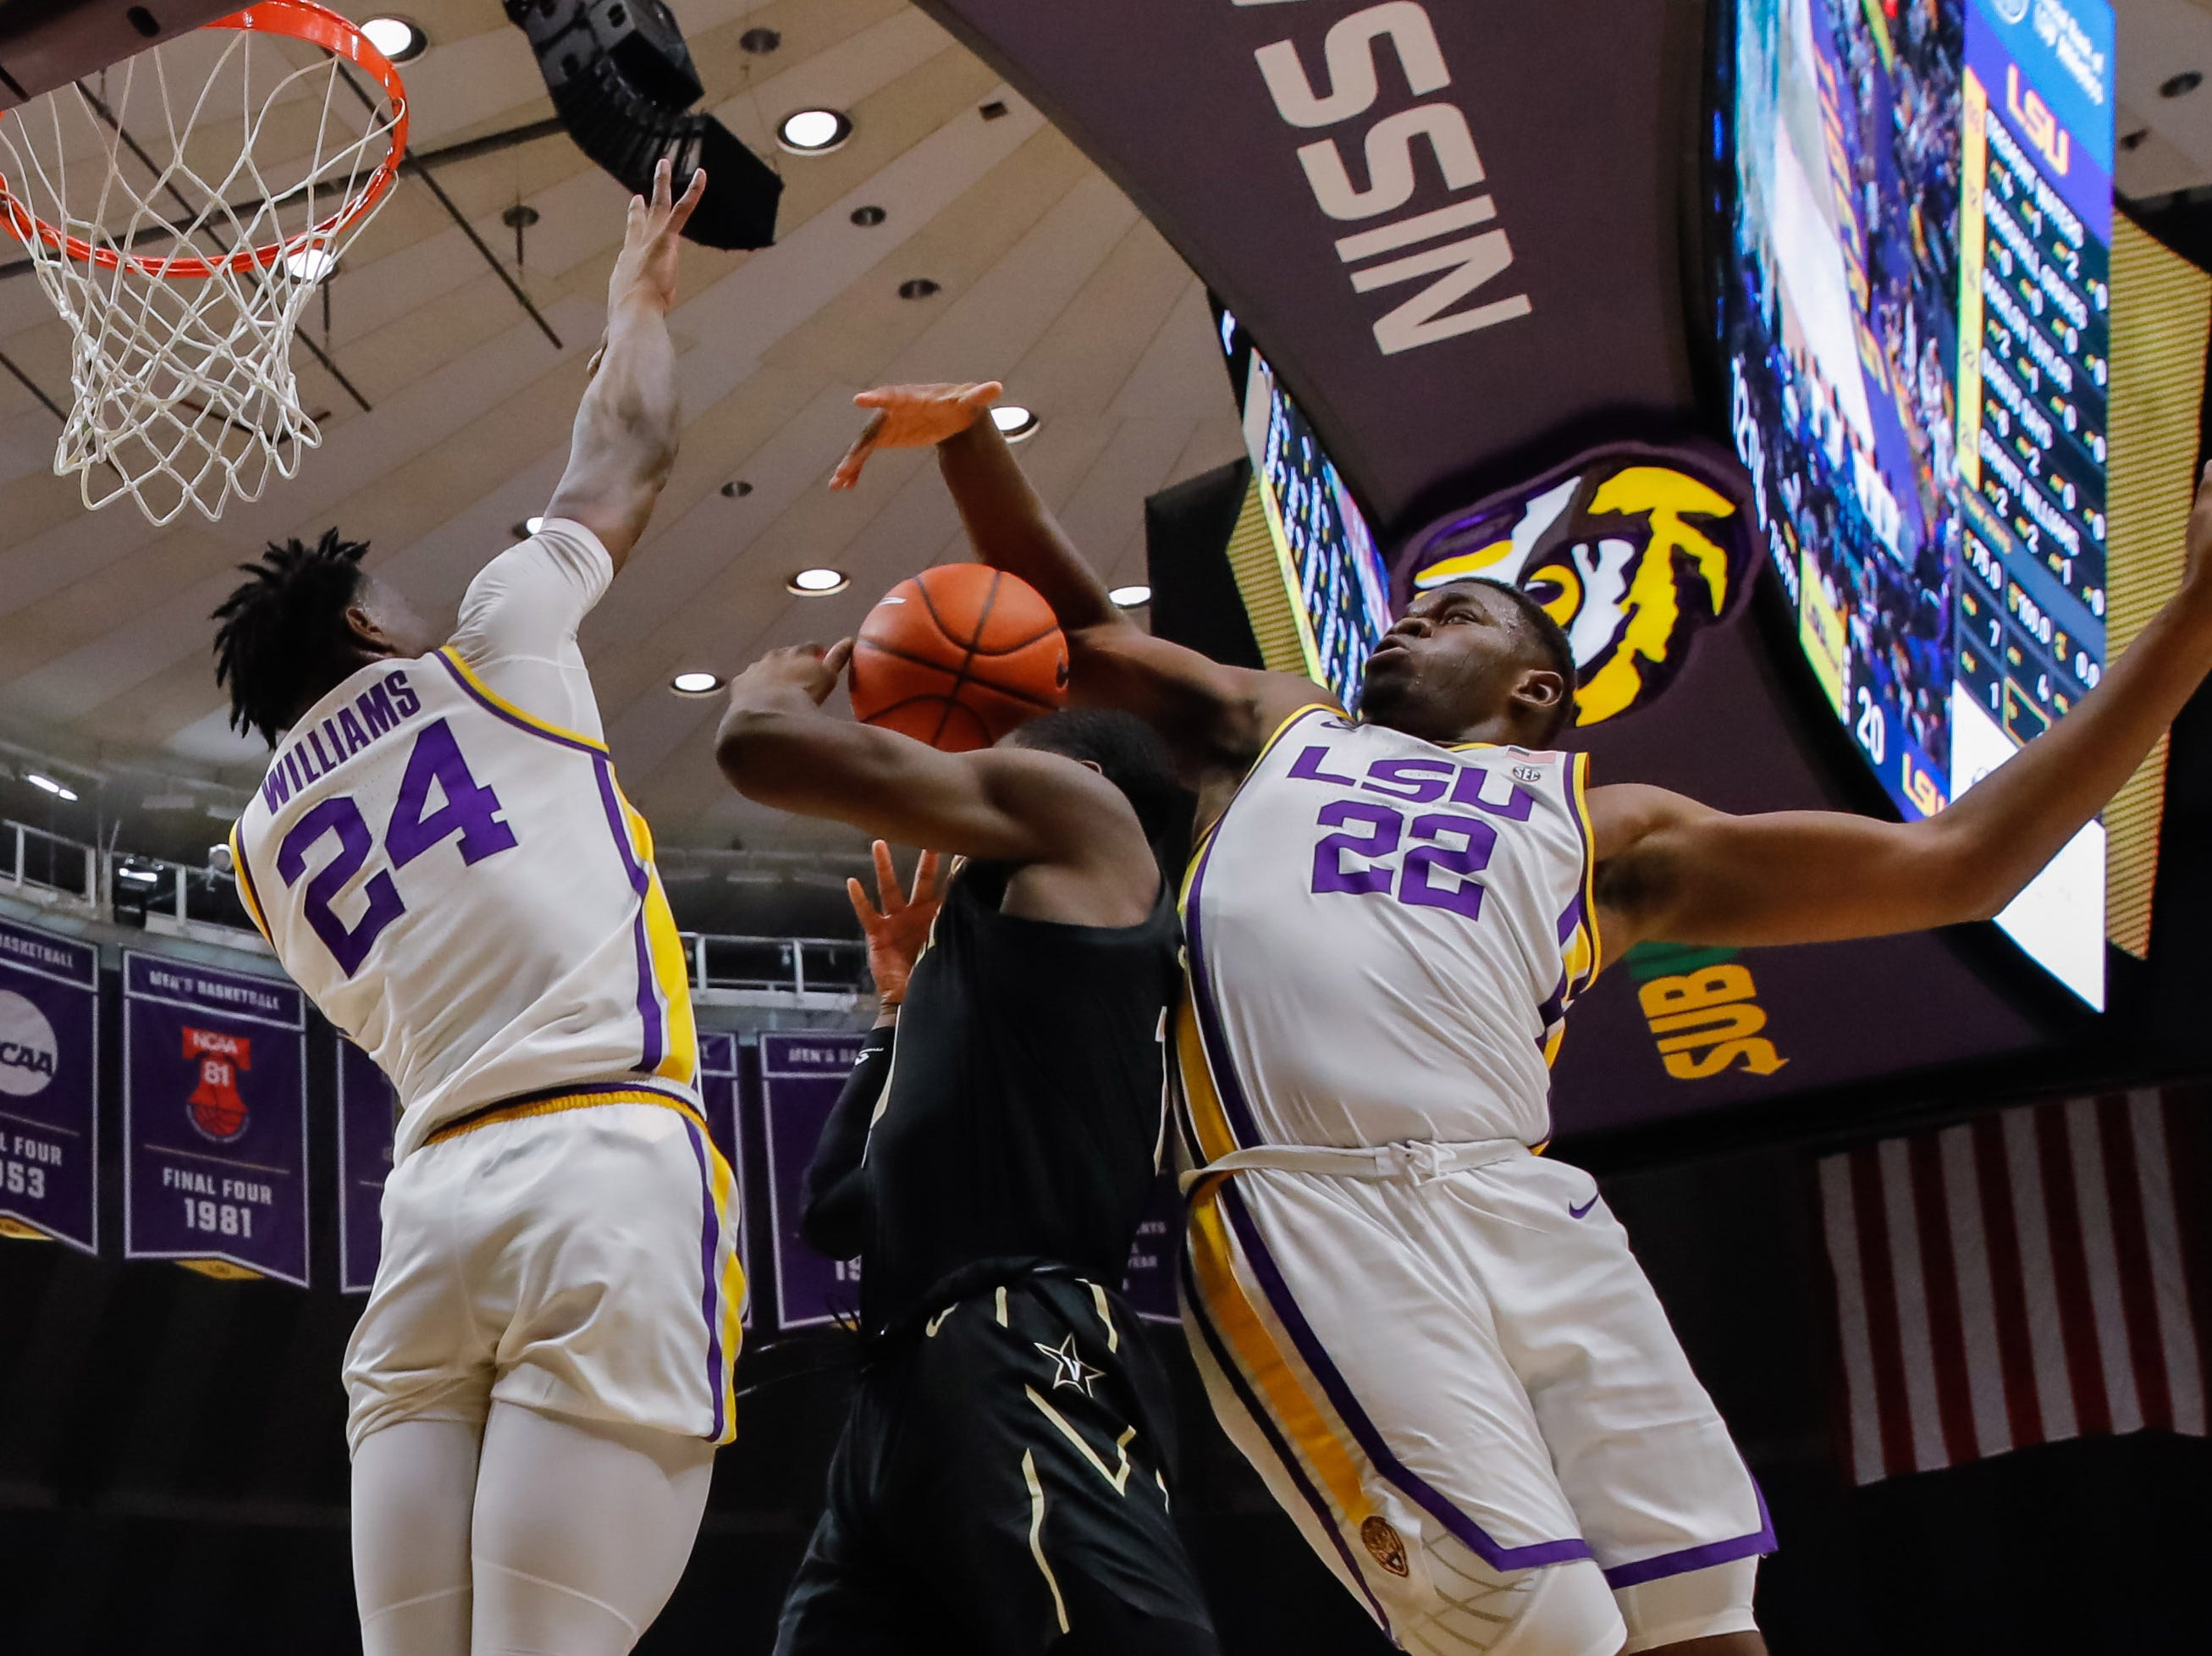 Mar 9, 2019; Baton Rouge, LA, USA; LSU Tigers forward Darius Days (22) and forward Emmitt Williams (24) block the shot of Vanderbilt Commodores forward Matthew Moyer (13) at Maravich Assembly Center. Mandatory Credit: Stephen Lew-USA TODAY Sports